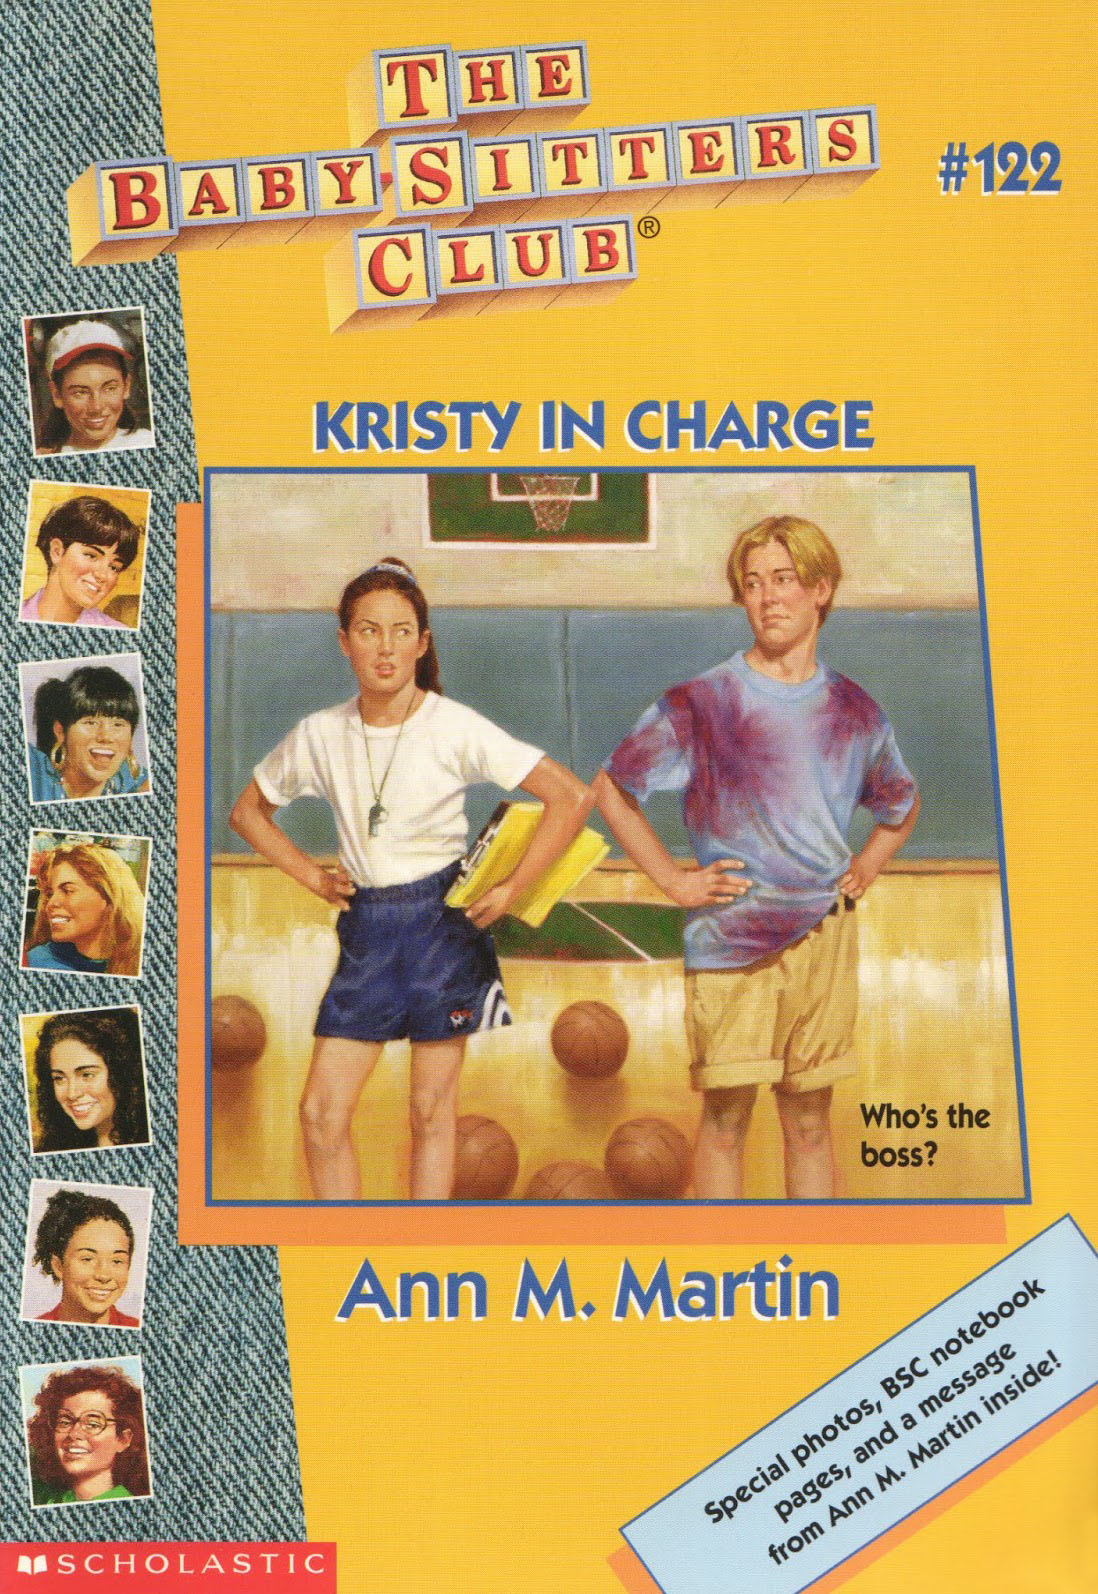 Kristy in Charge